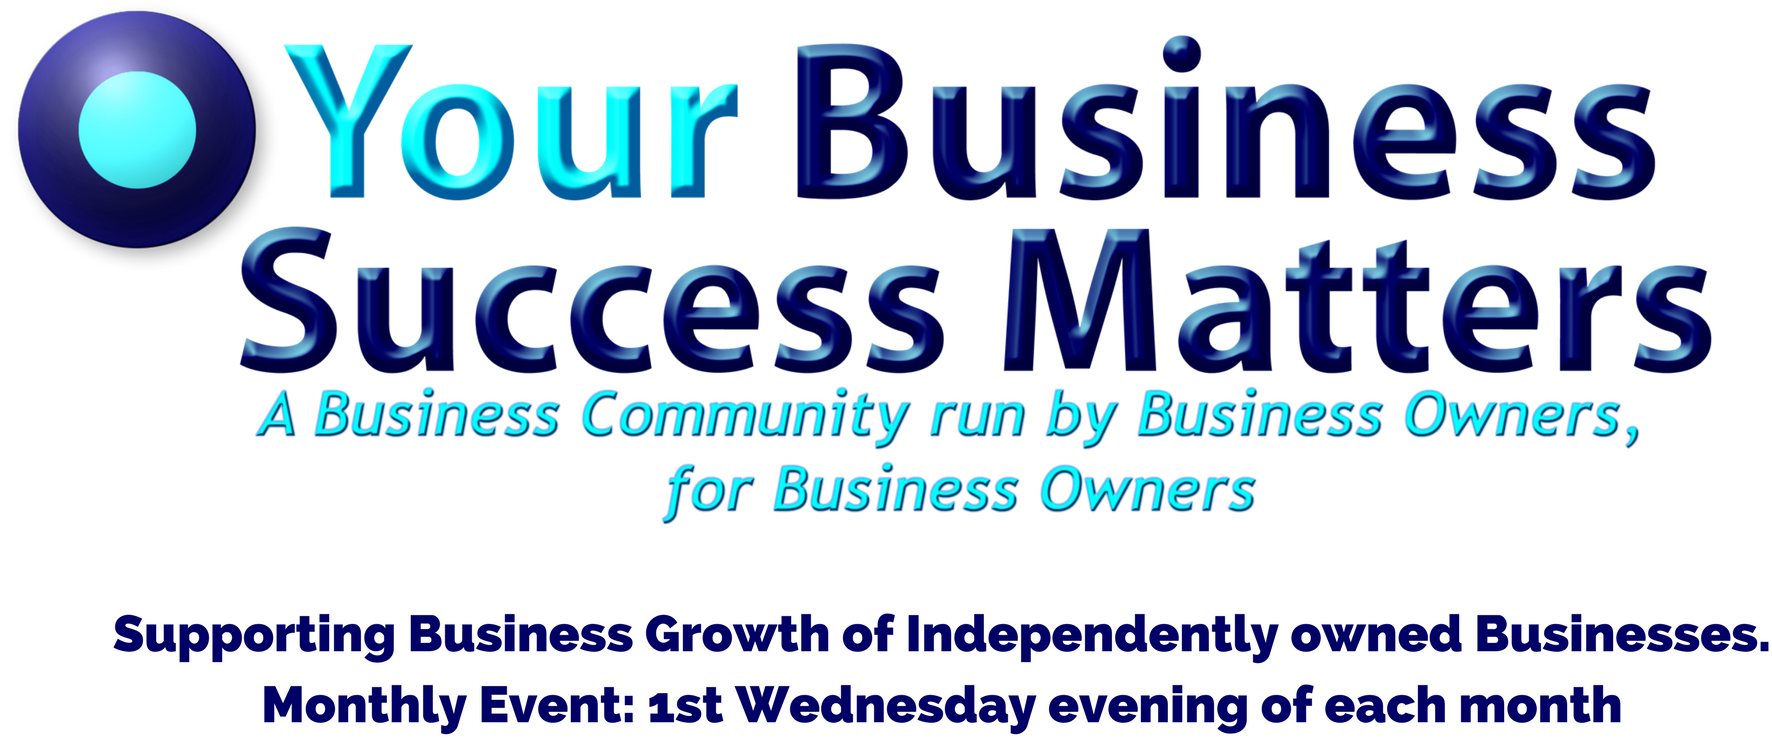 Your Business Success Matters- monthly event for Business Owners, by Business owners in St Albans